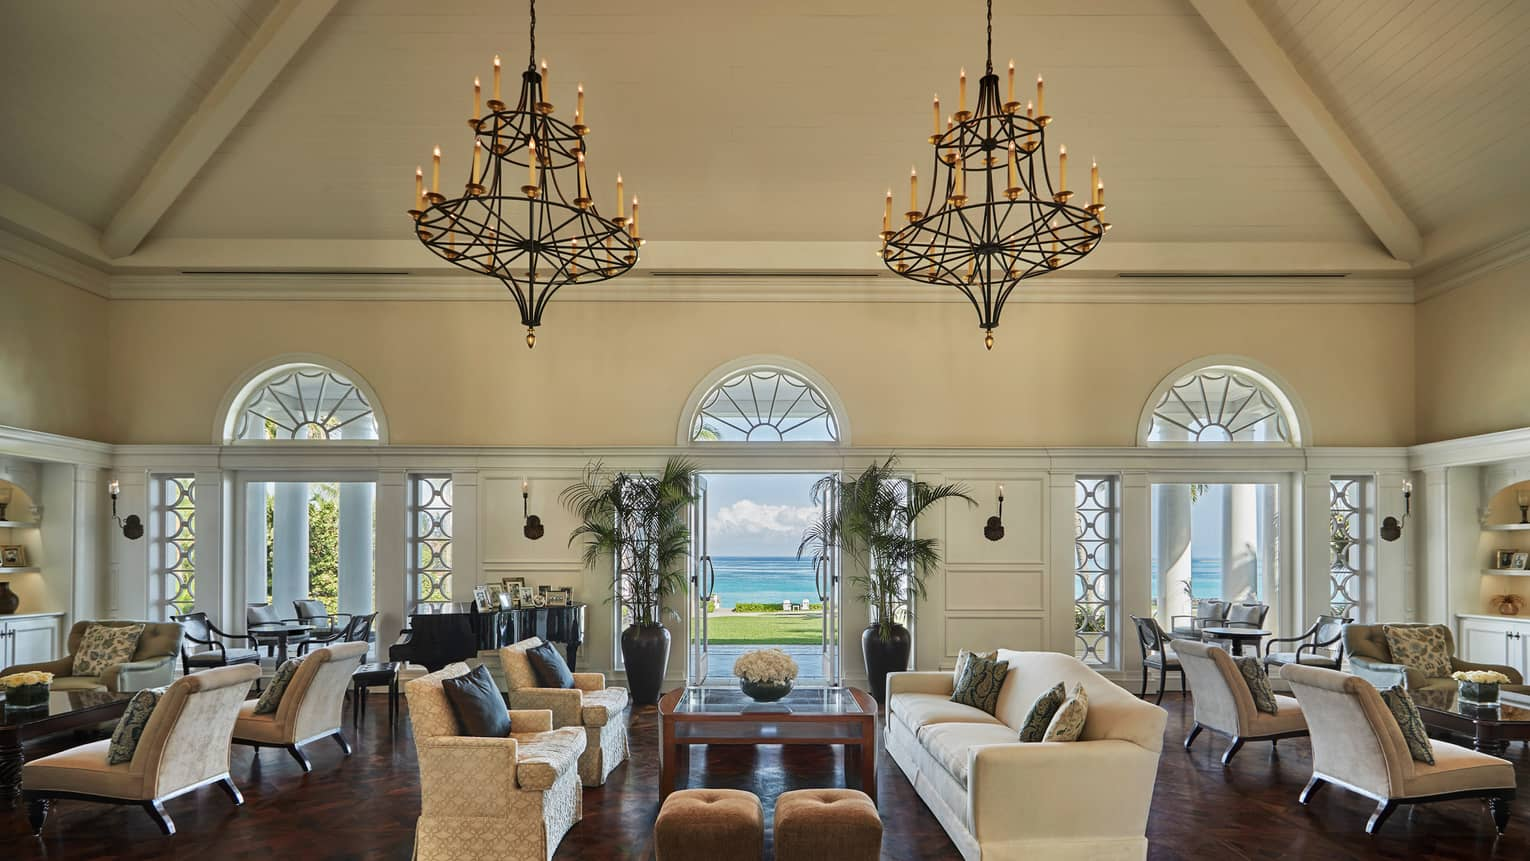 Large iron chandeliers hang from cathedral ceilings over sofas, arched windows in lobby